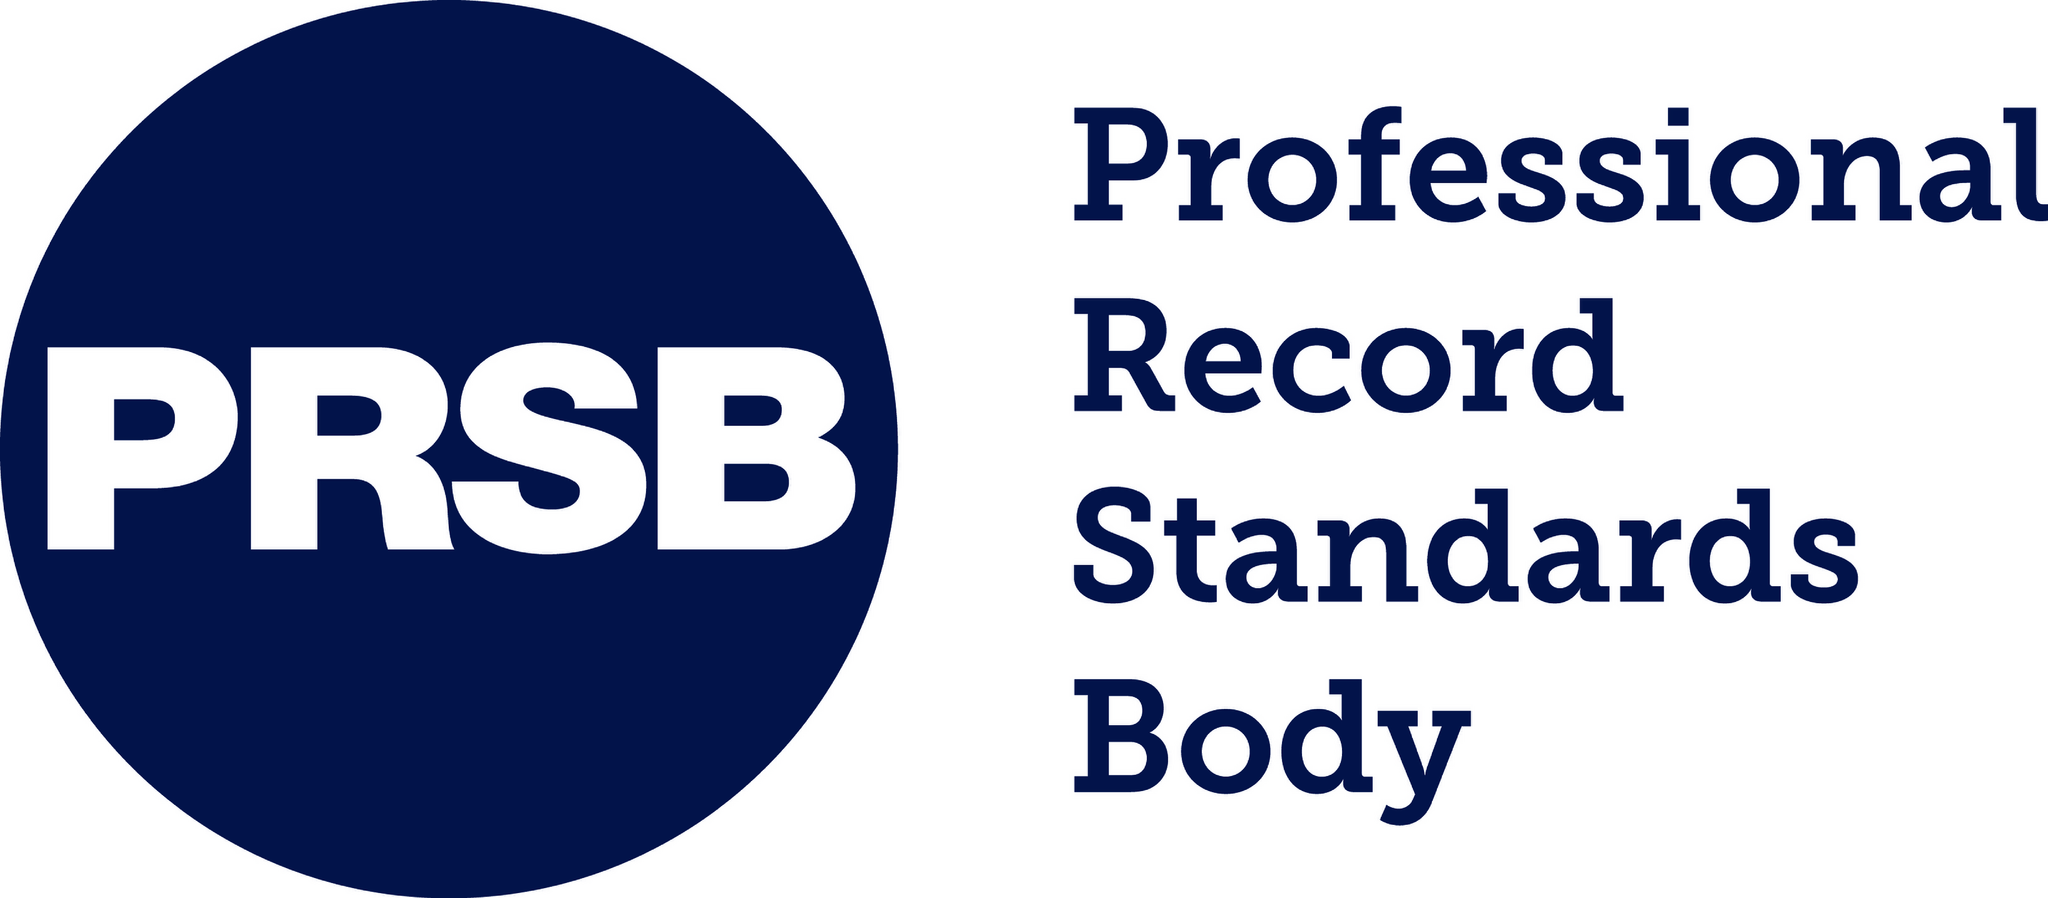 Professional Record Standards Body